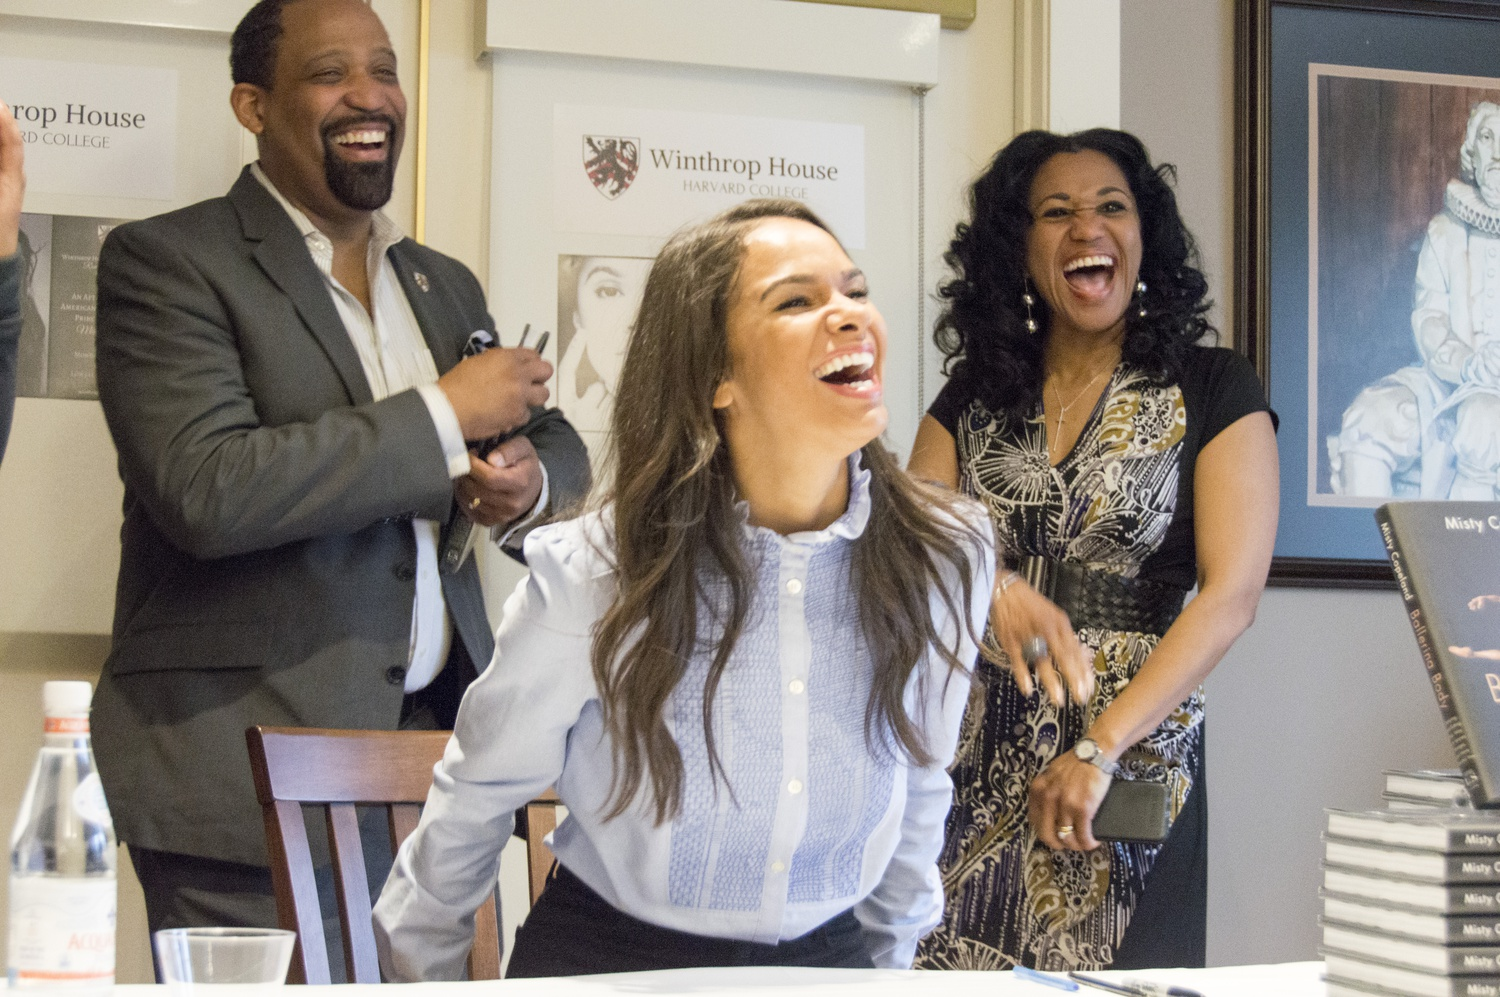 Misty Copeland stopped by Lowell Lecture Hall Monday afternoon to deliver a talk moderated by Dean Ronald S. Sullivan, Jr. and Dean Stephanie Robinson, who are the first African-American faculty deans of the College.